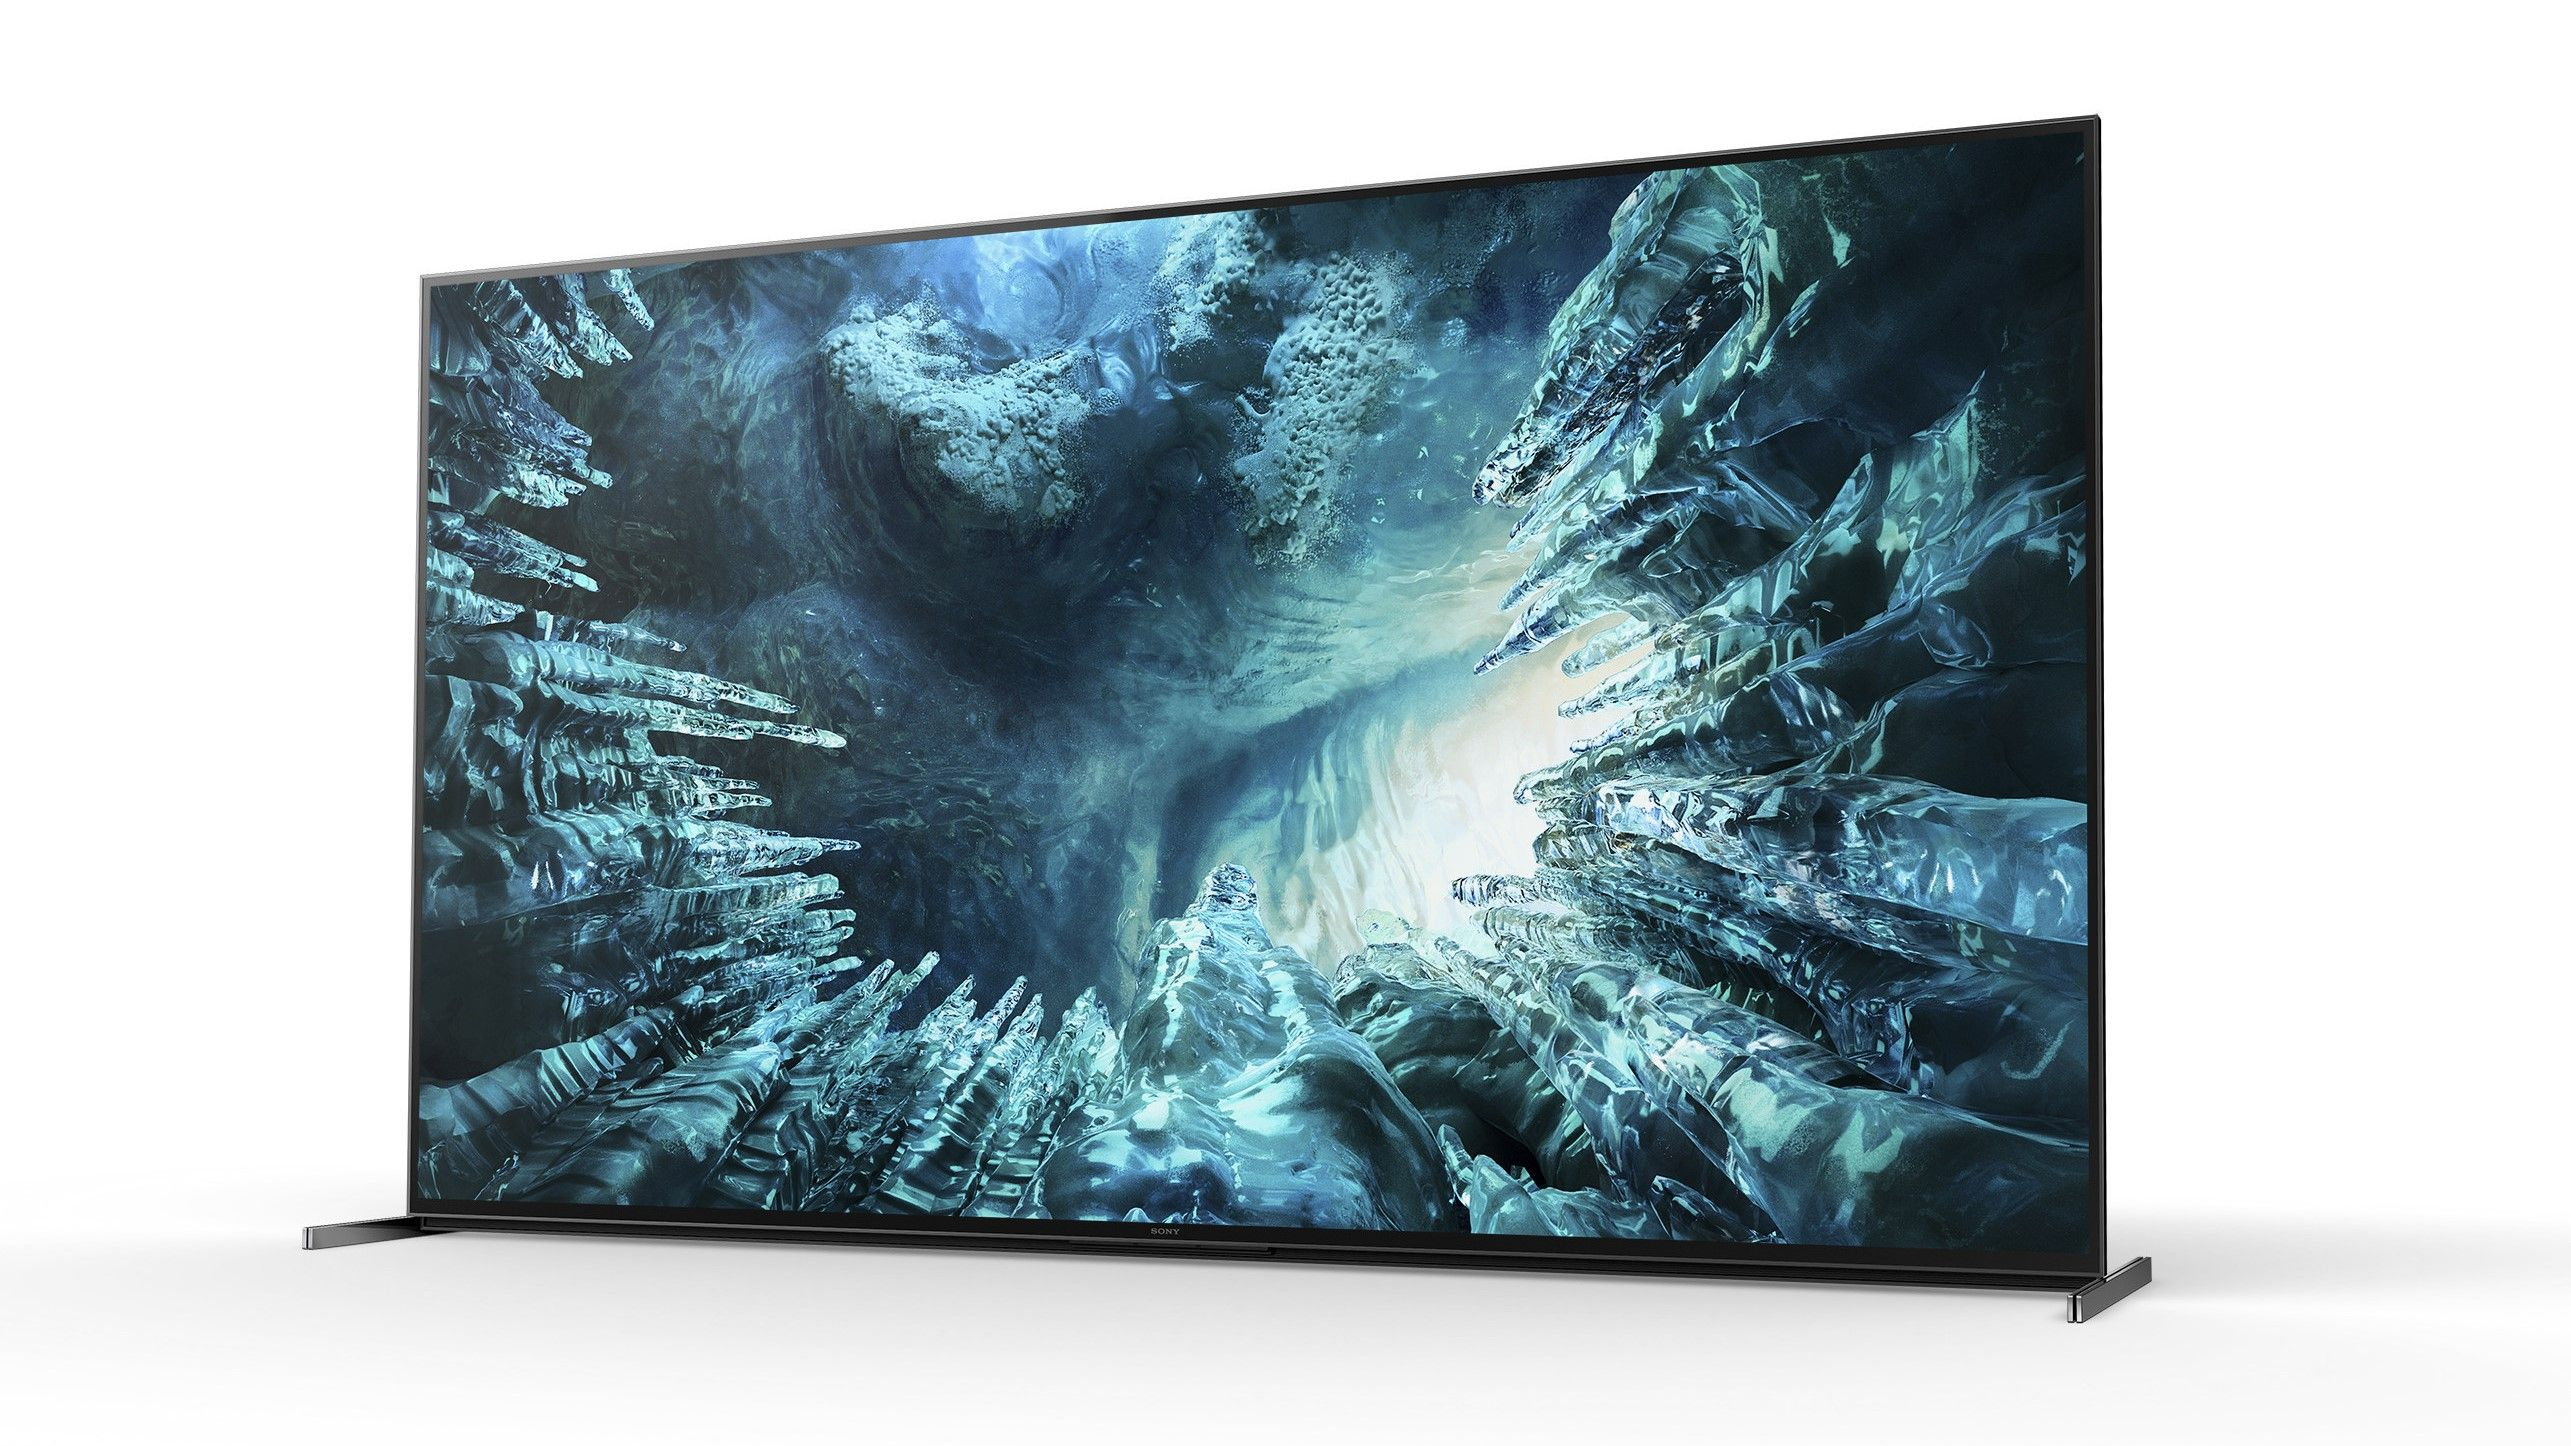 Sony announces first batch of PS5ready TVs in 2020 Sony